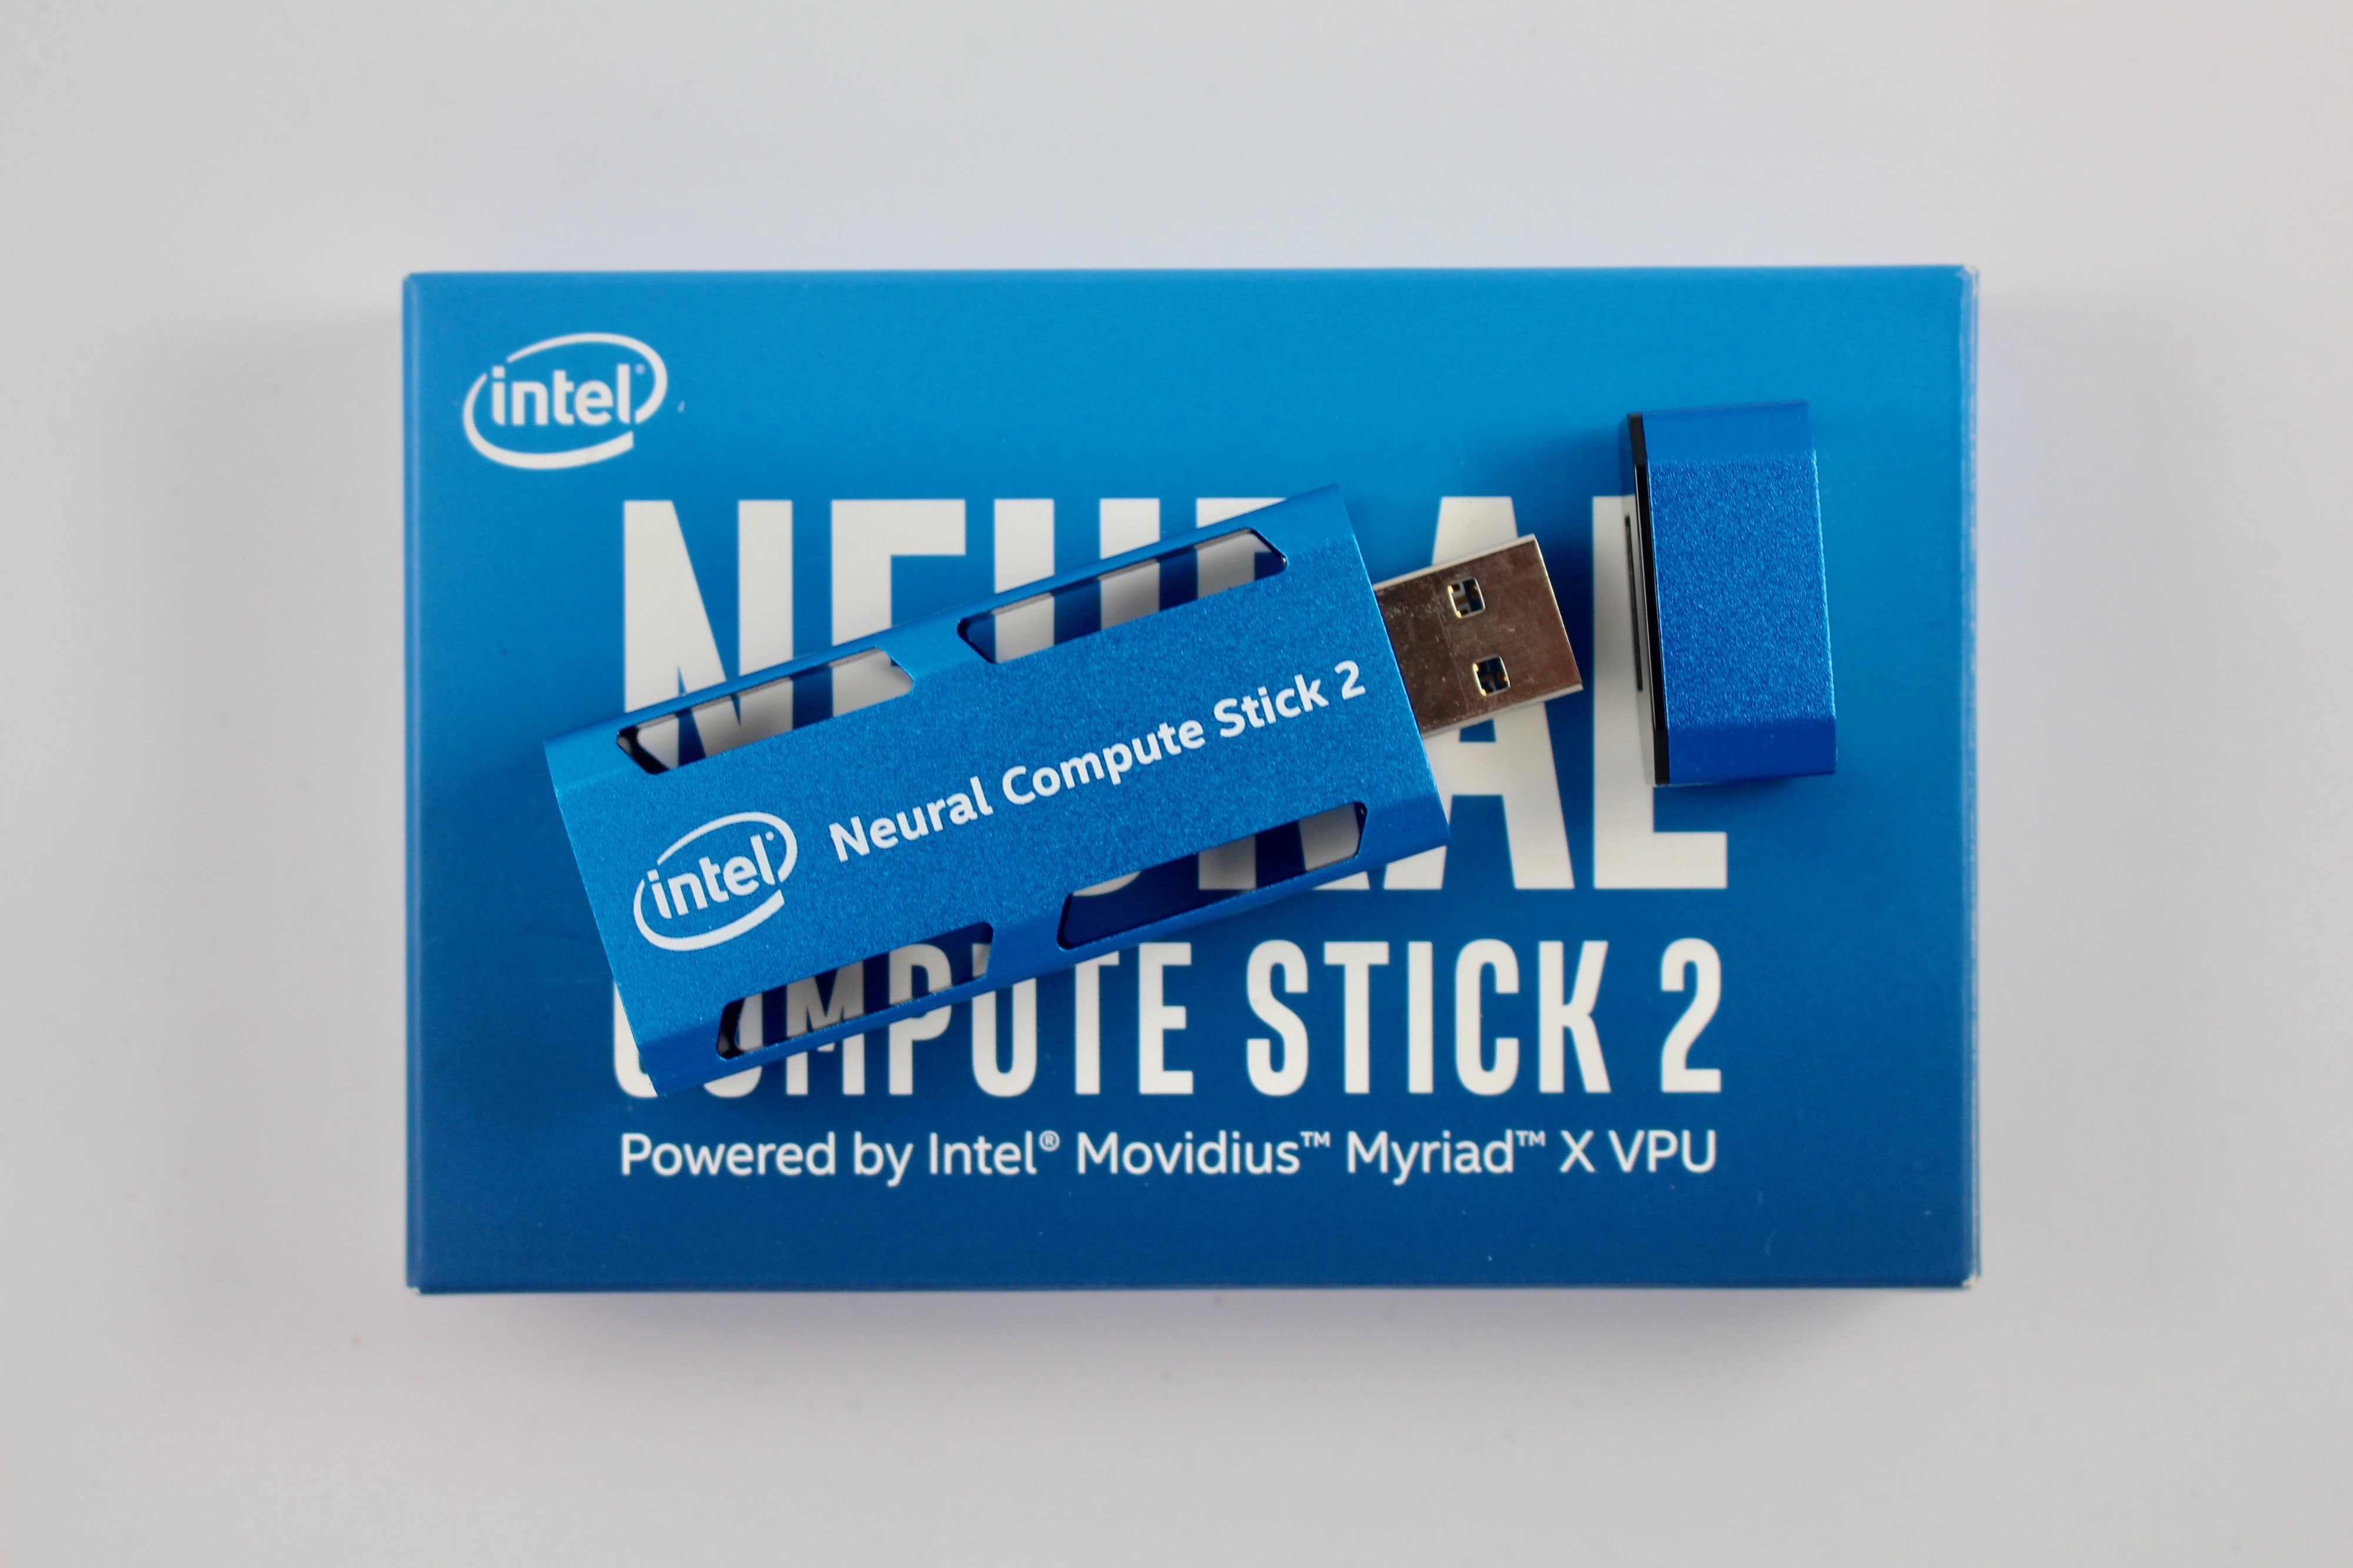 Getting Started with the Intel Neural Compute Stick 2 and